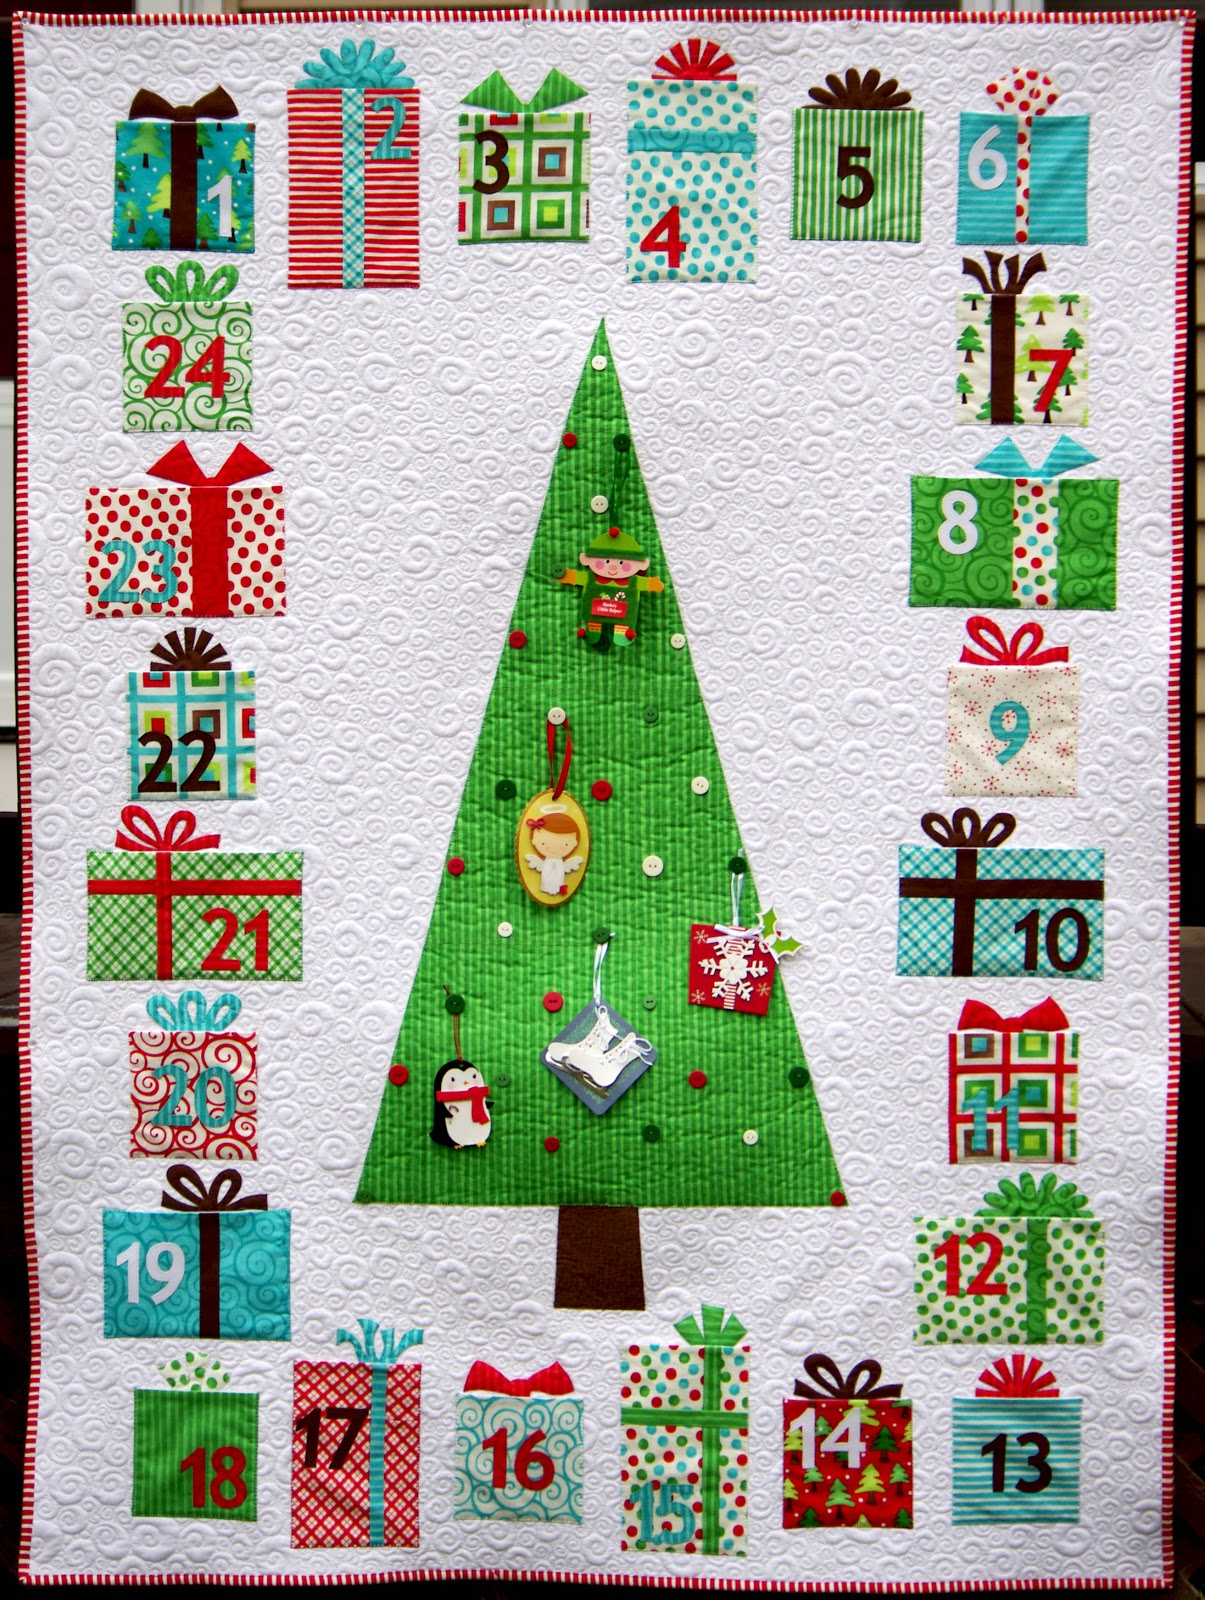 Quilting Patterns Instructions : Ahhh...Quilting: Advent Calendar Quilt Instructions